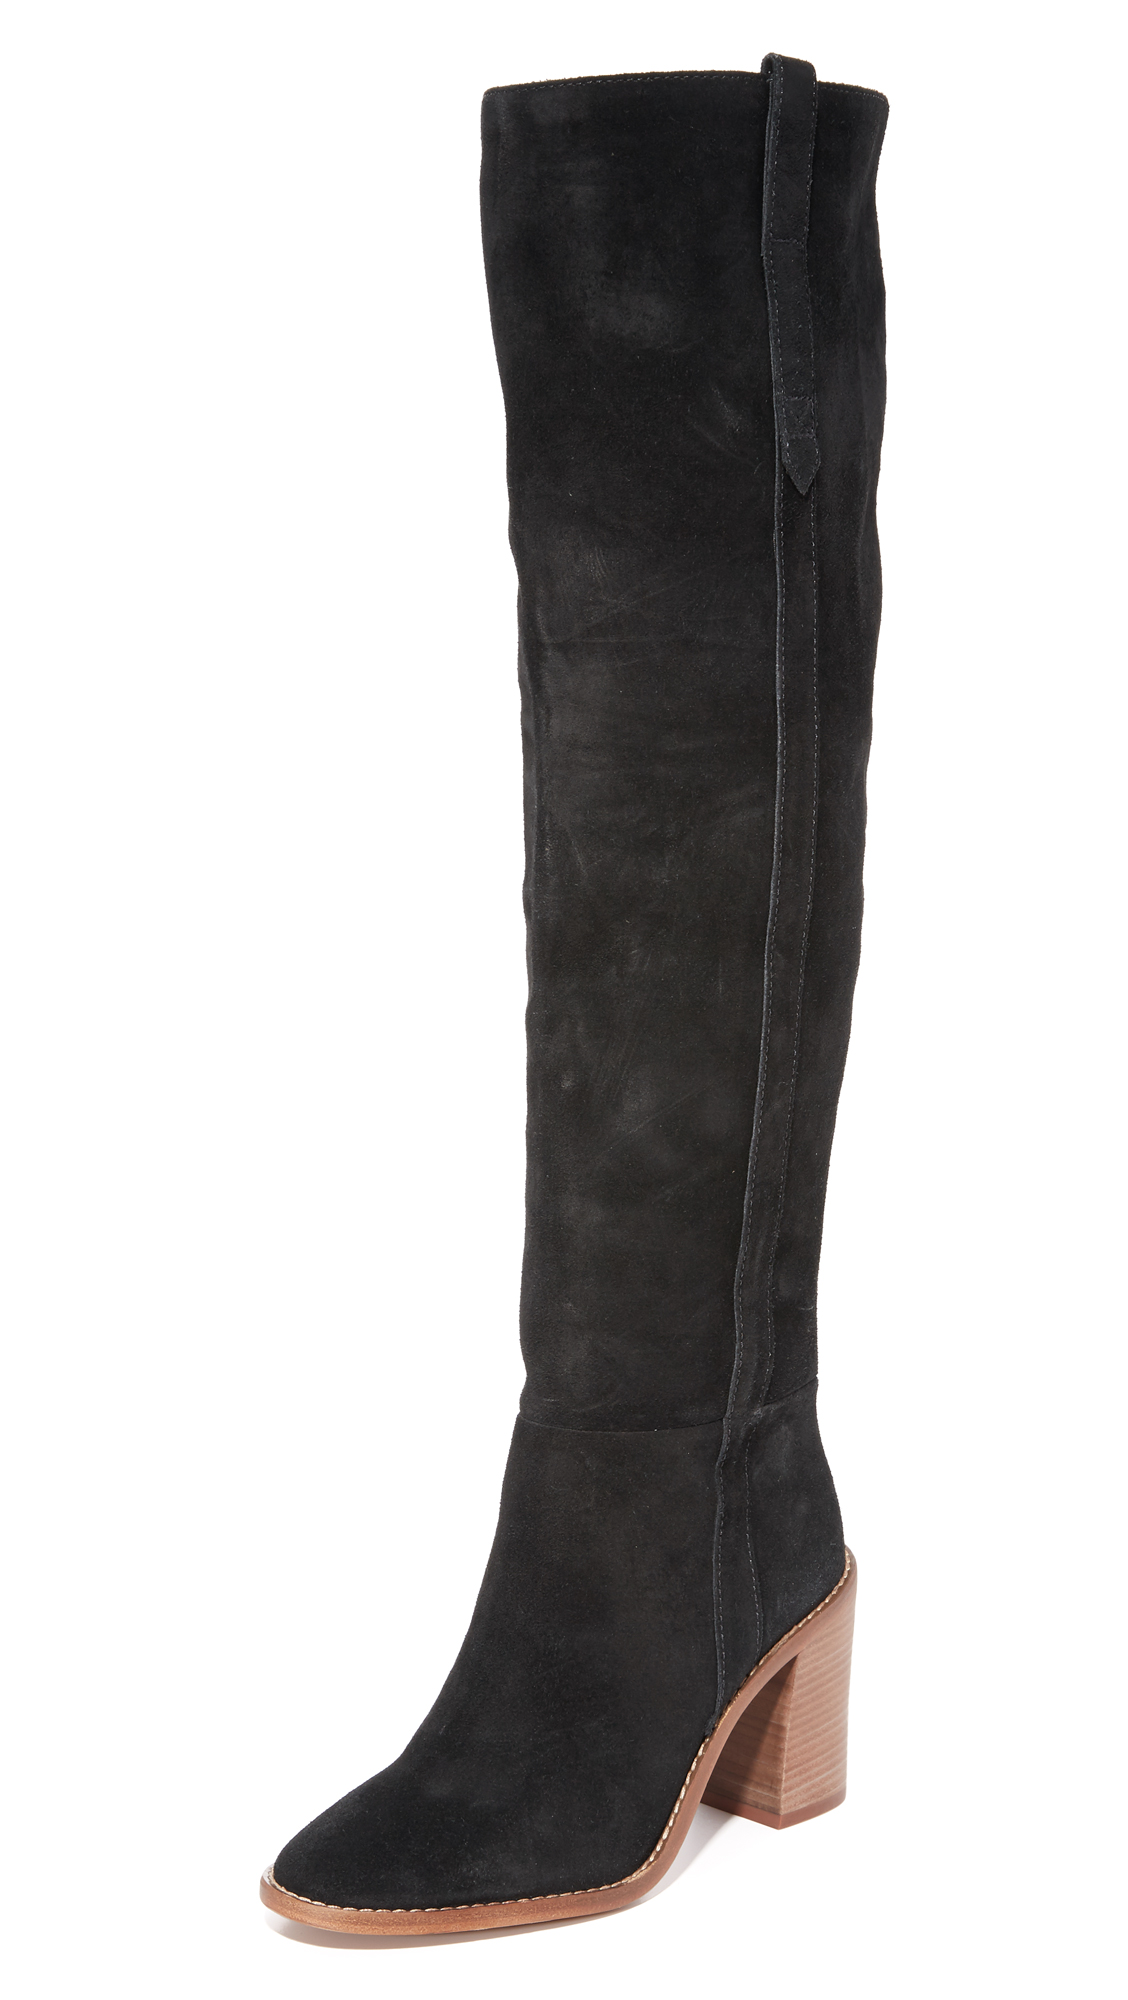 Madewell Jimi Over The Knee Boots - True Black